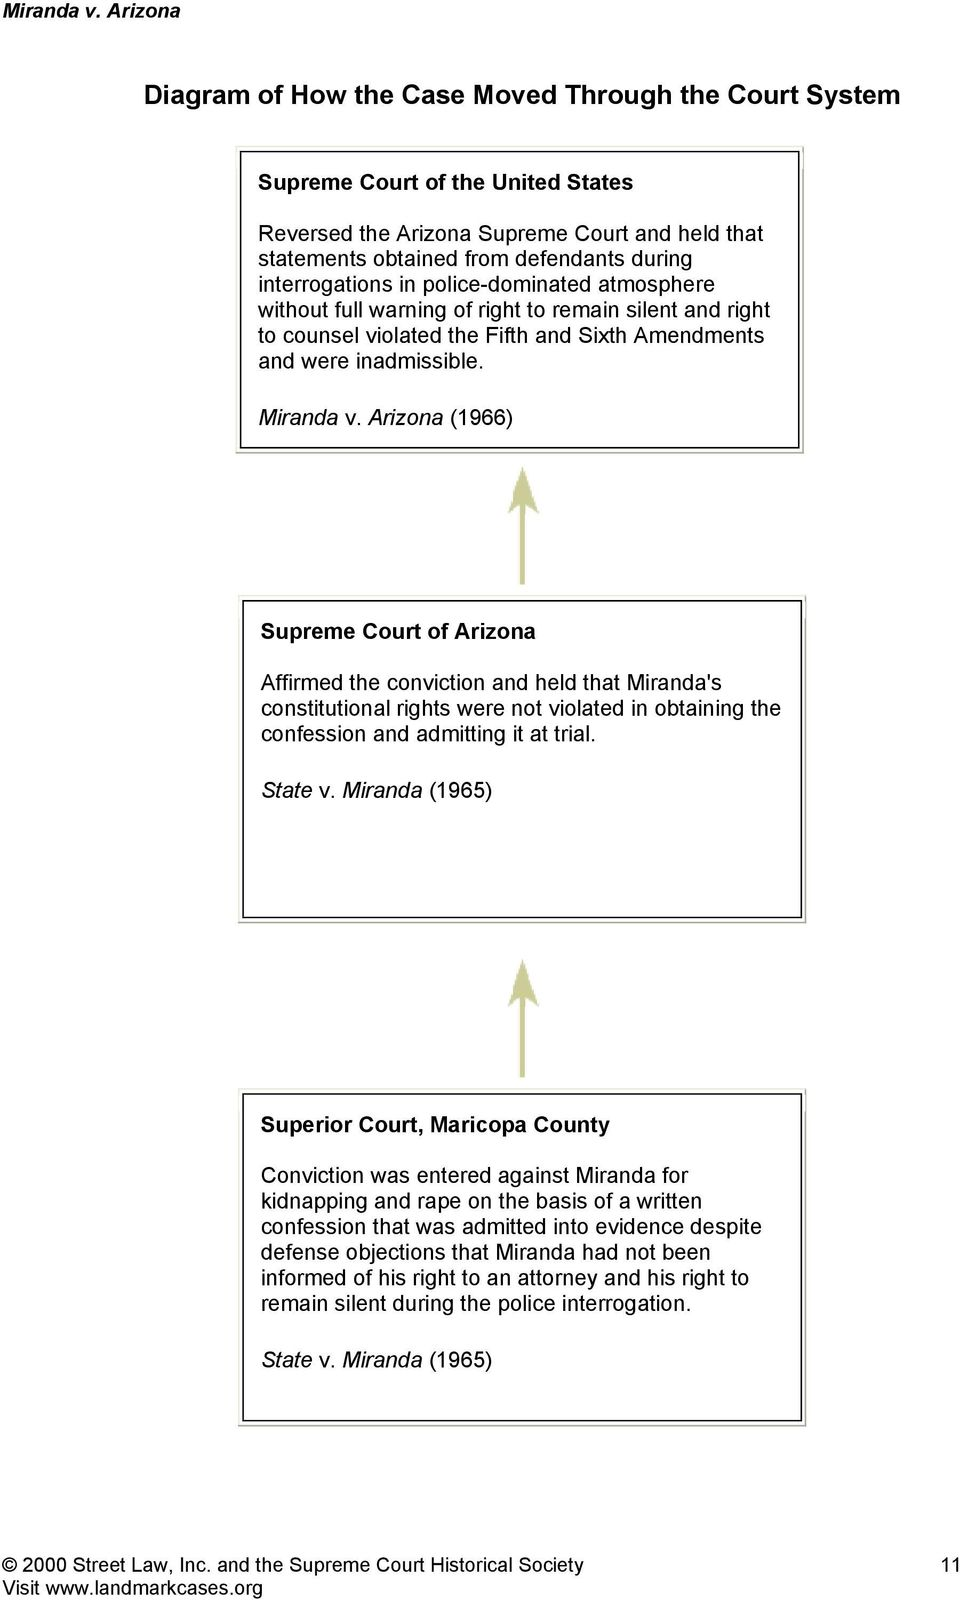 miranda v arizona 5 essay The case of miranda v arizona is a famous and important legal case the decision of miranda v arizona led to the creation of something very important that is practiced to this day.